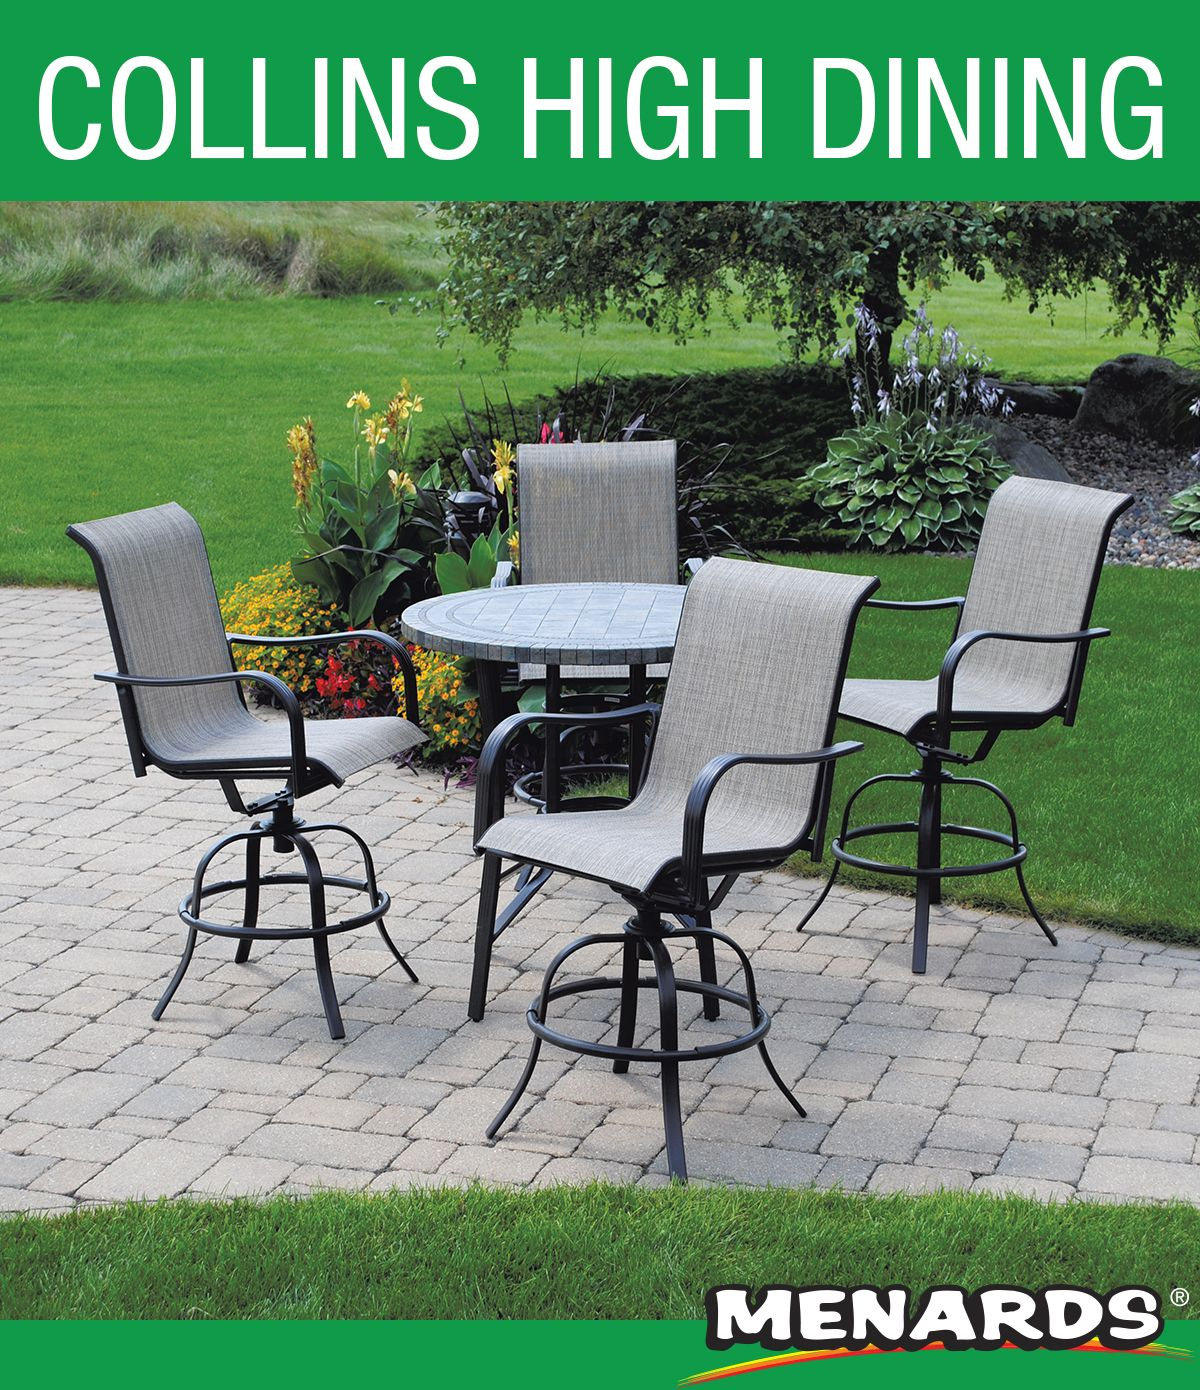 Relaxed dining at its finest! These comfortable swivel